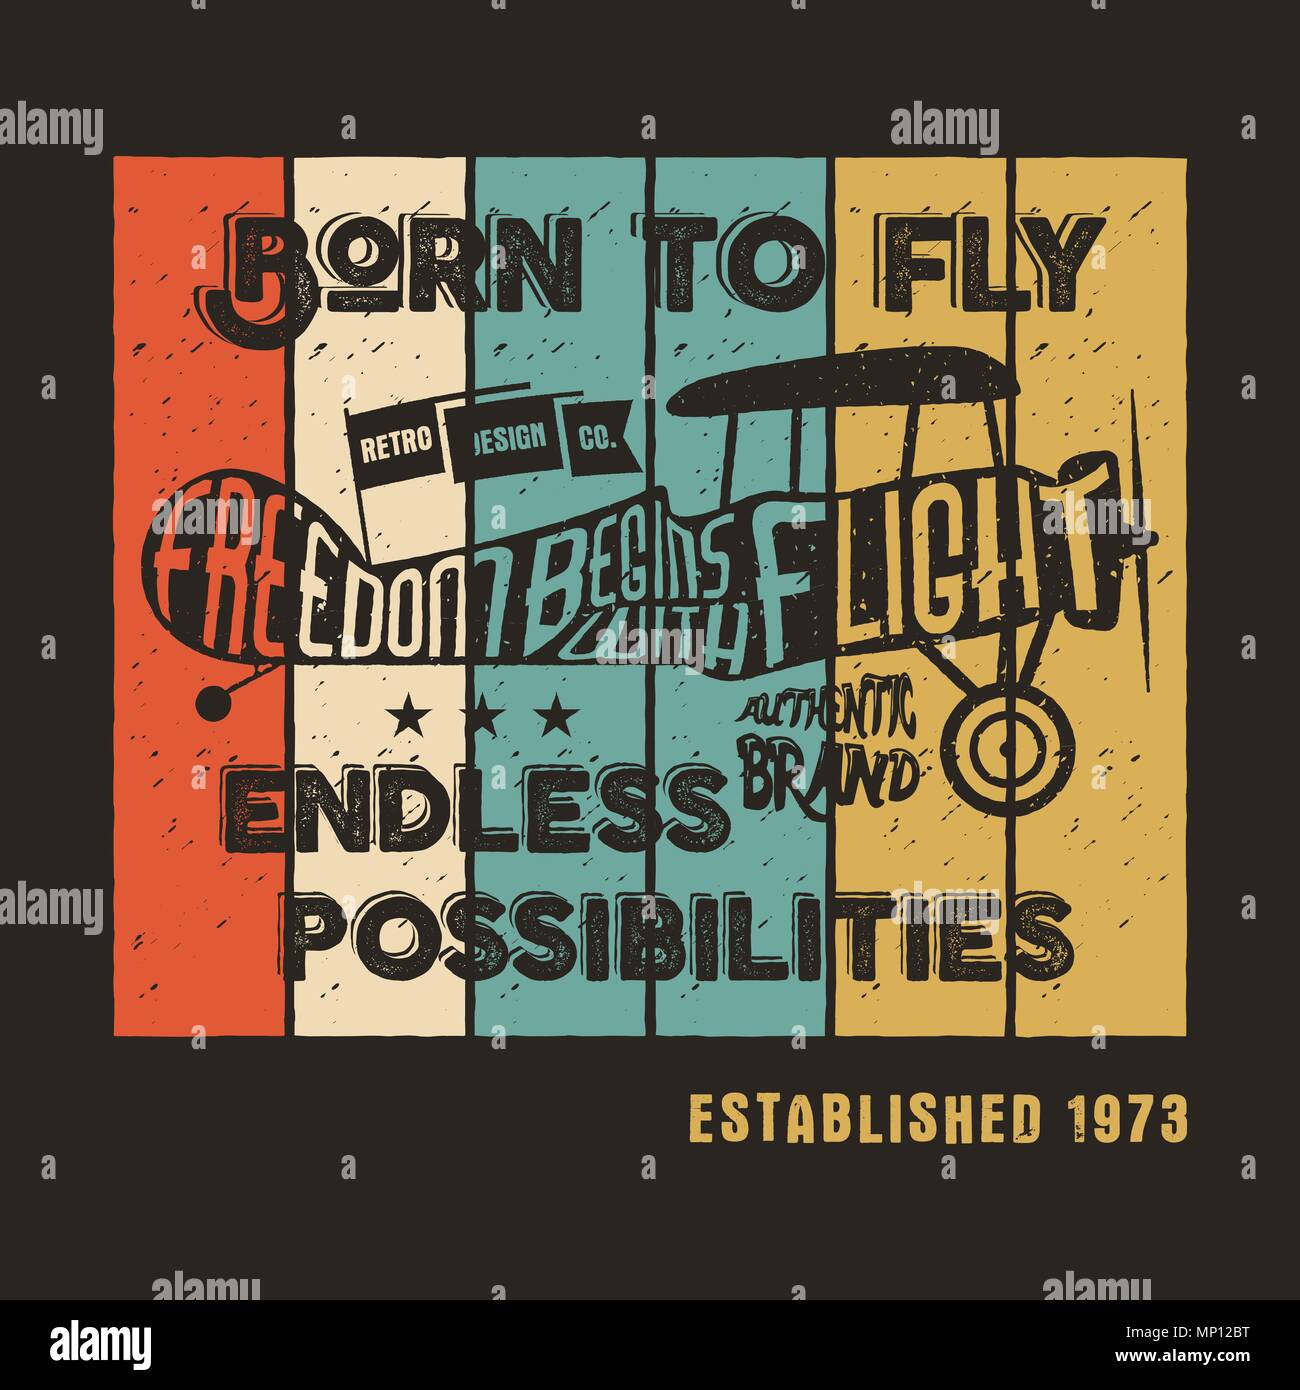 3a61a8d8 Vector prints, old school aircraft T-Shirt. Retro air show shirt design  with motivational text. Typography print design. Biplane, born to fly theme.